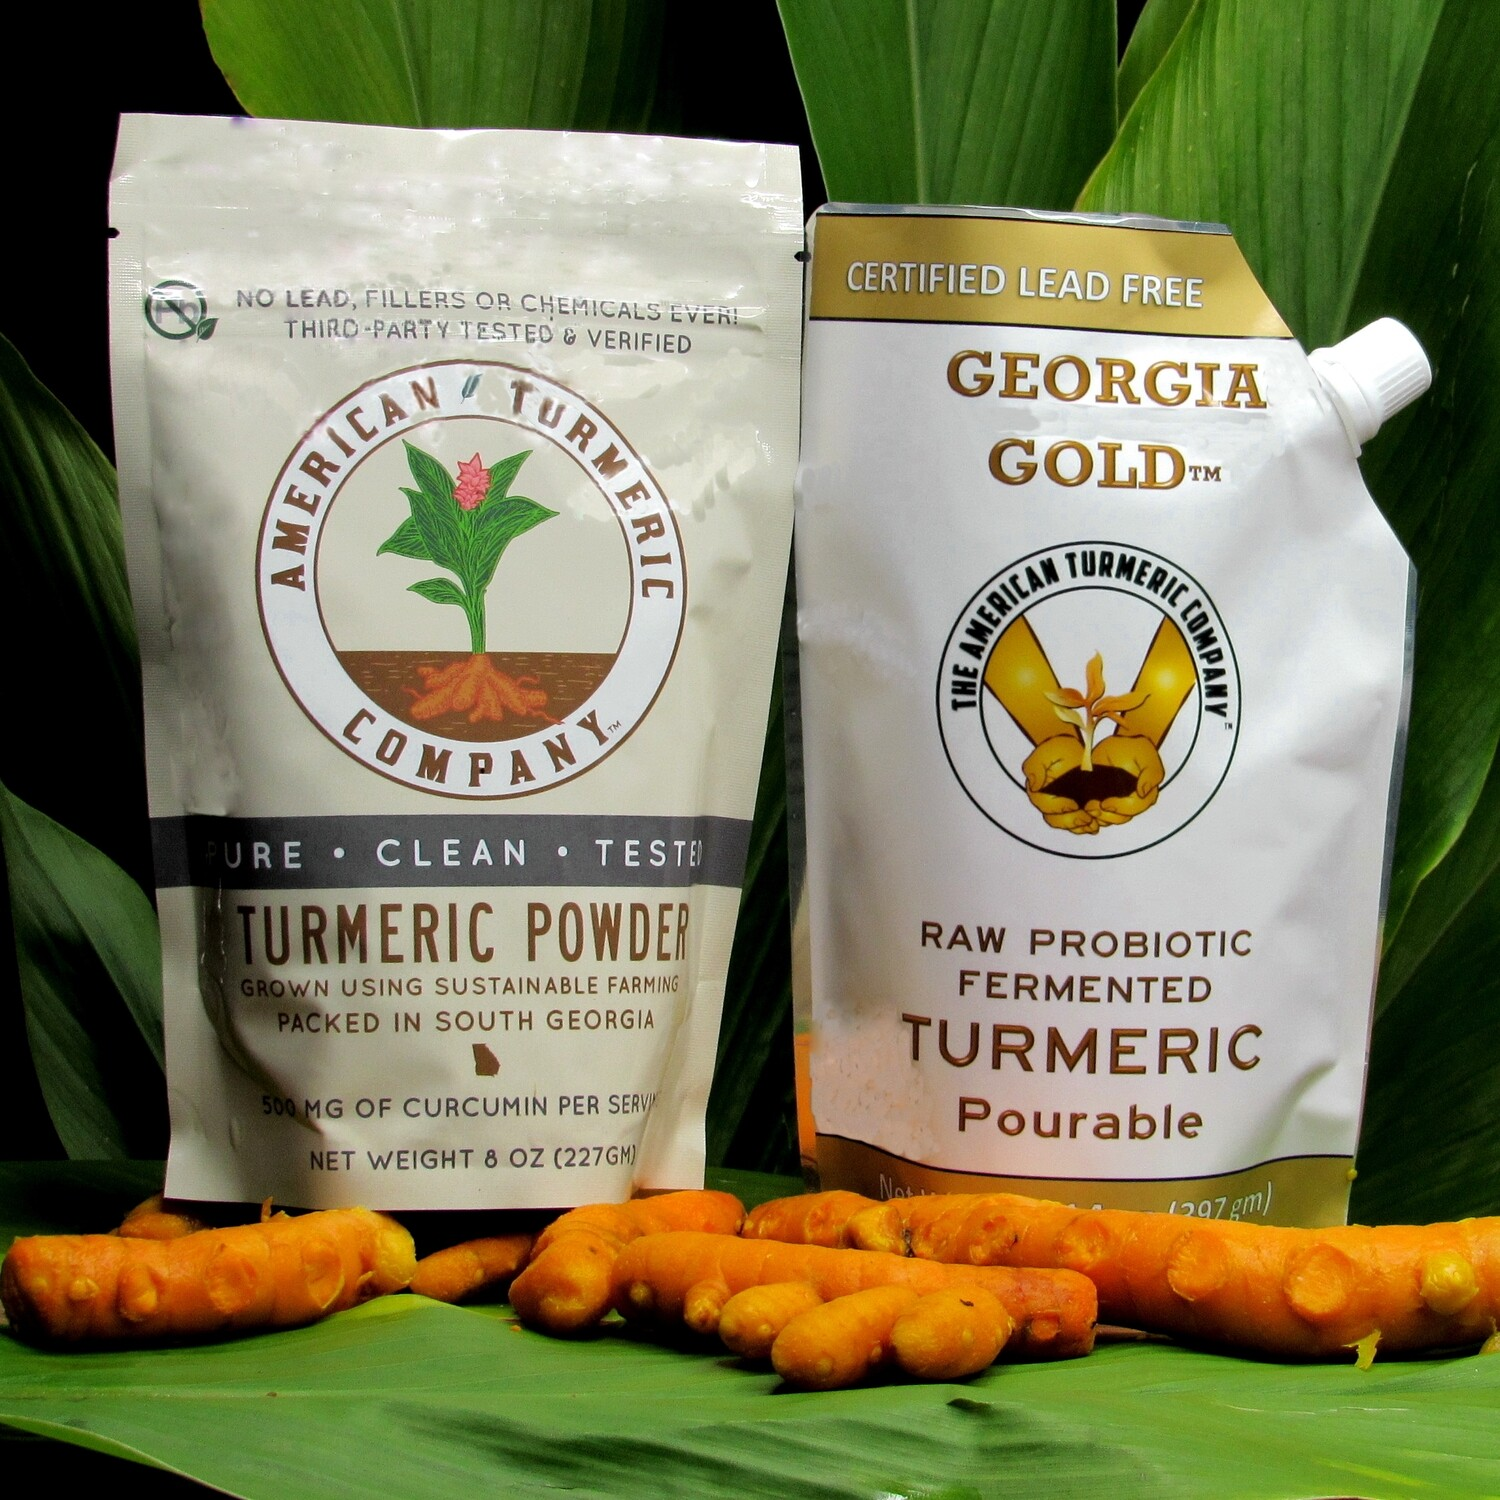 COMBO SPECIAL -Georgia Gold Pourable Probiotic Turmeric and Turmeric Powder - Now with Discounts - SAVE BIG